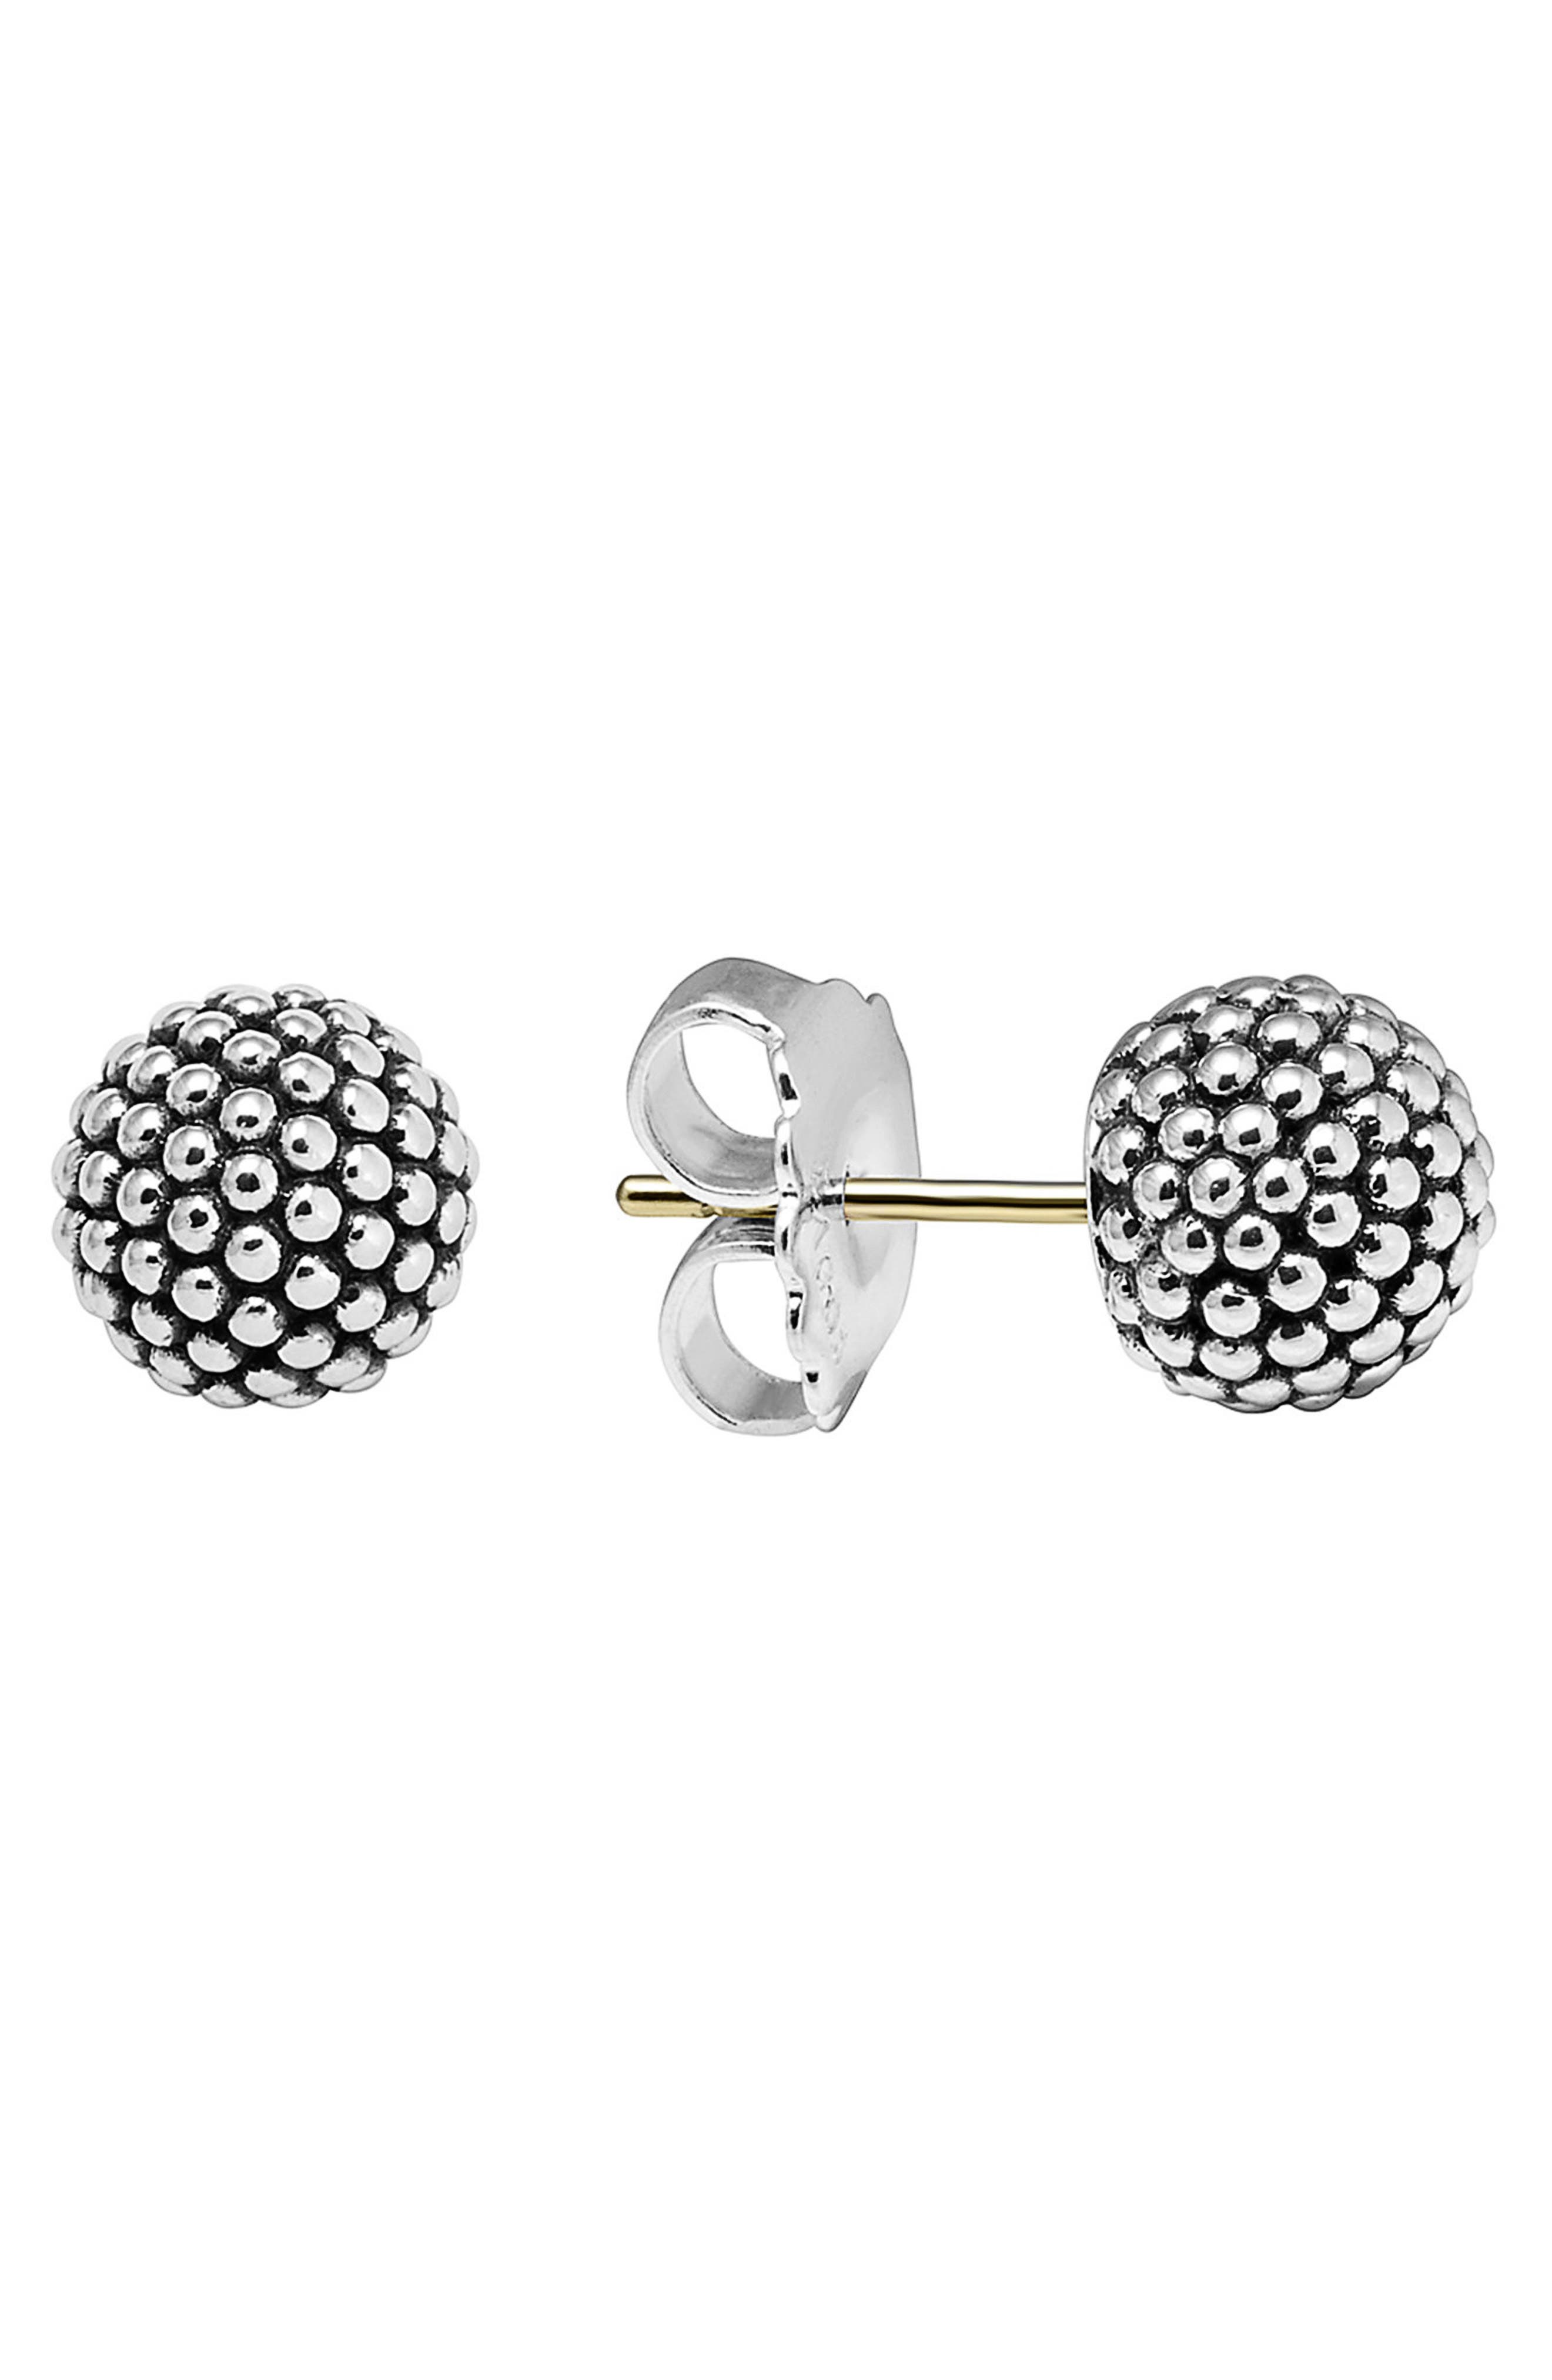 Alternate Image 1 Selected - LAGOS 'Columbus Circle' Ball Stud Earrings